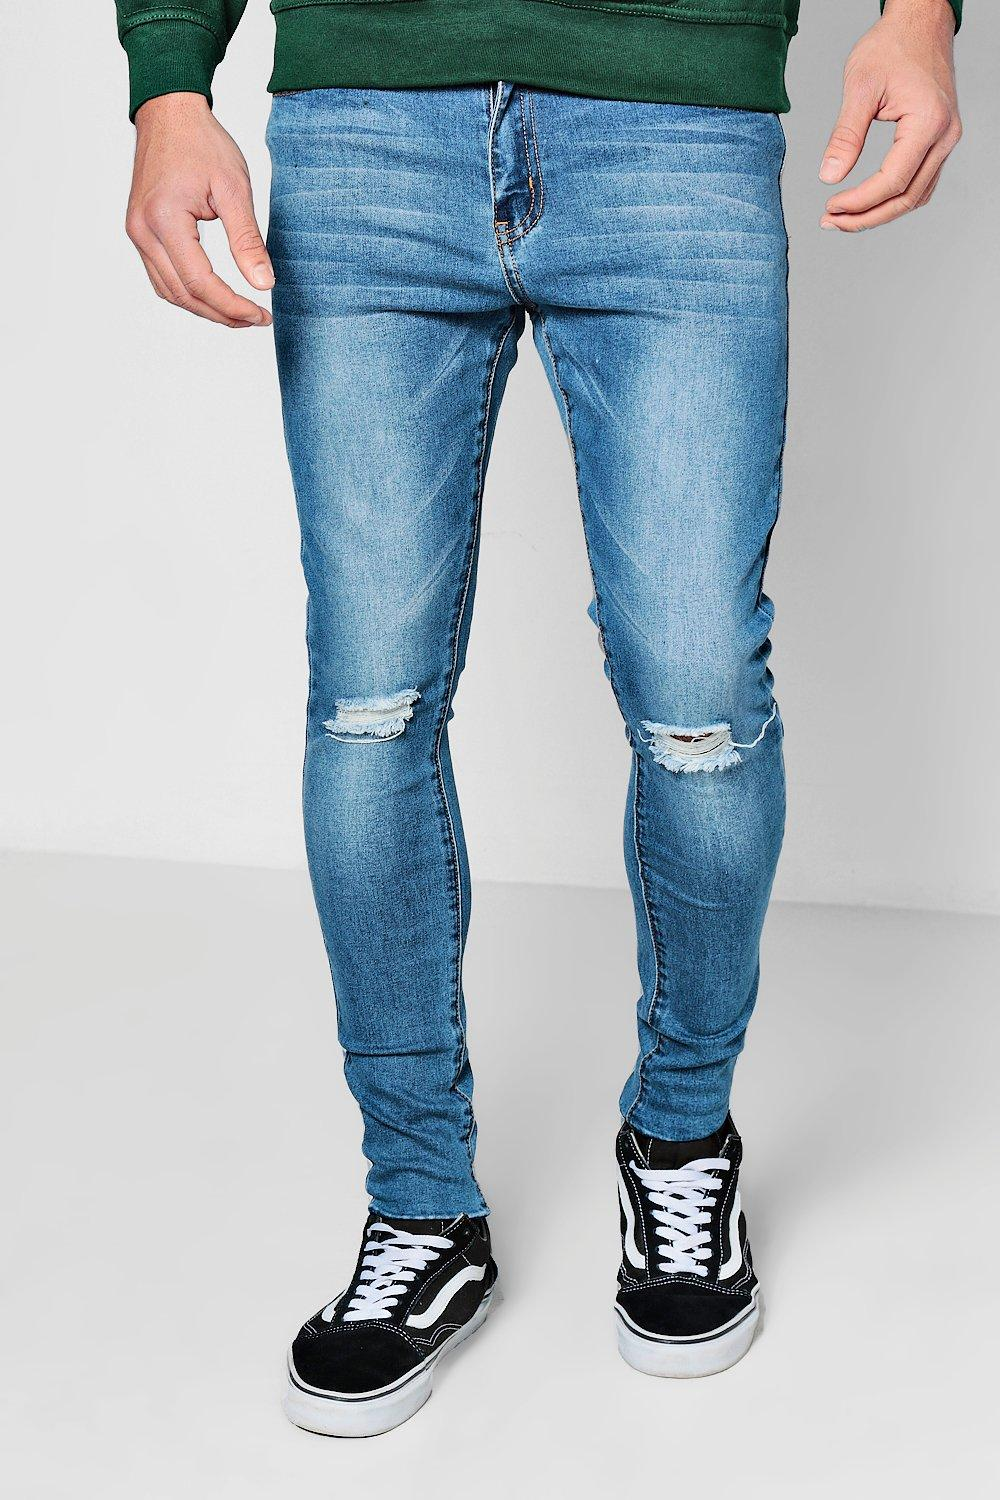 Edge mid Jeans On blue Raw Skinny Spray Distressed xqR7wFqP